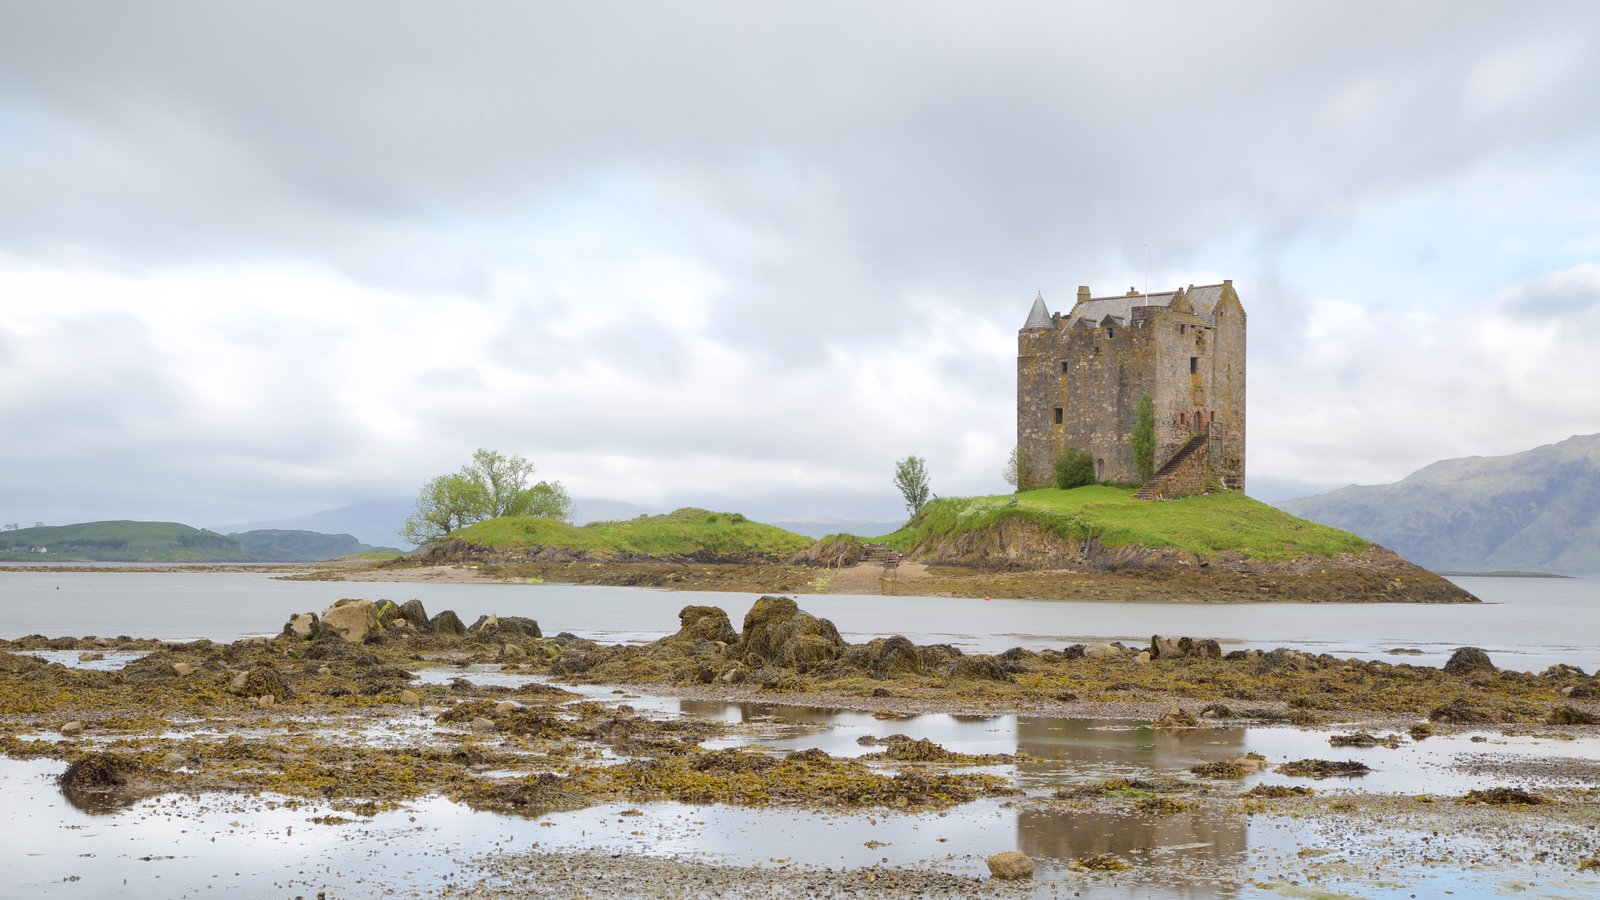 Castle Stalker featuring heritage elements, a lake or waterhole and heritage architecture